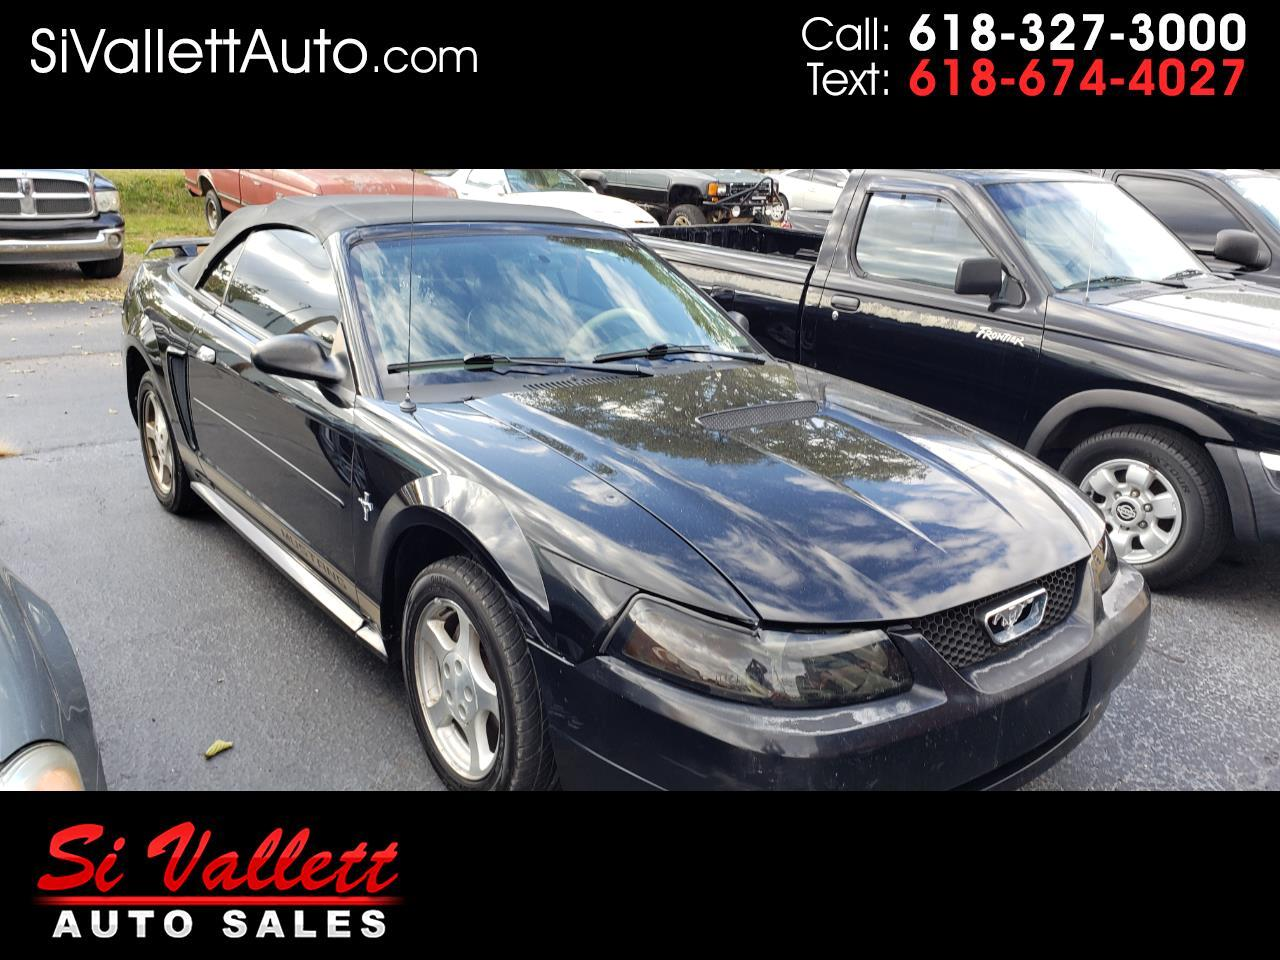 Ford Mustang 2dr Convertible Premium 2002